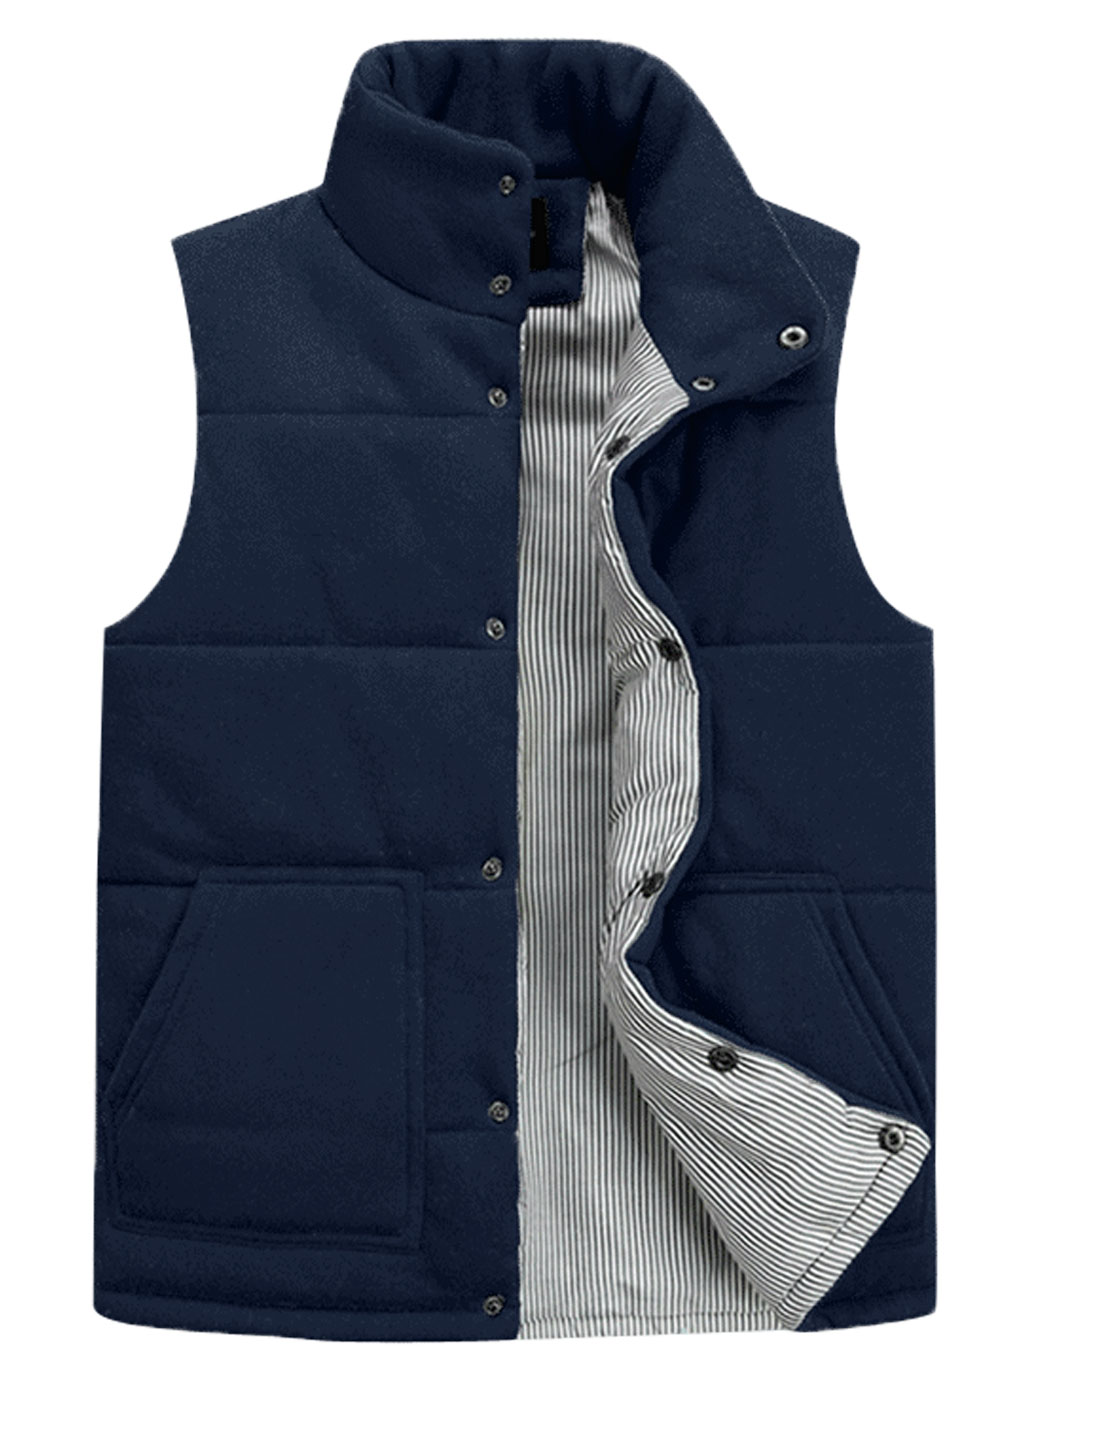 Men Stand Collar Single Breasted Stylish Padded Vest Navy Blue M